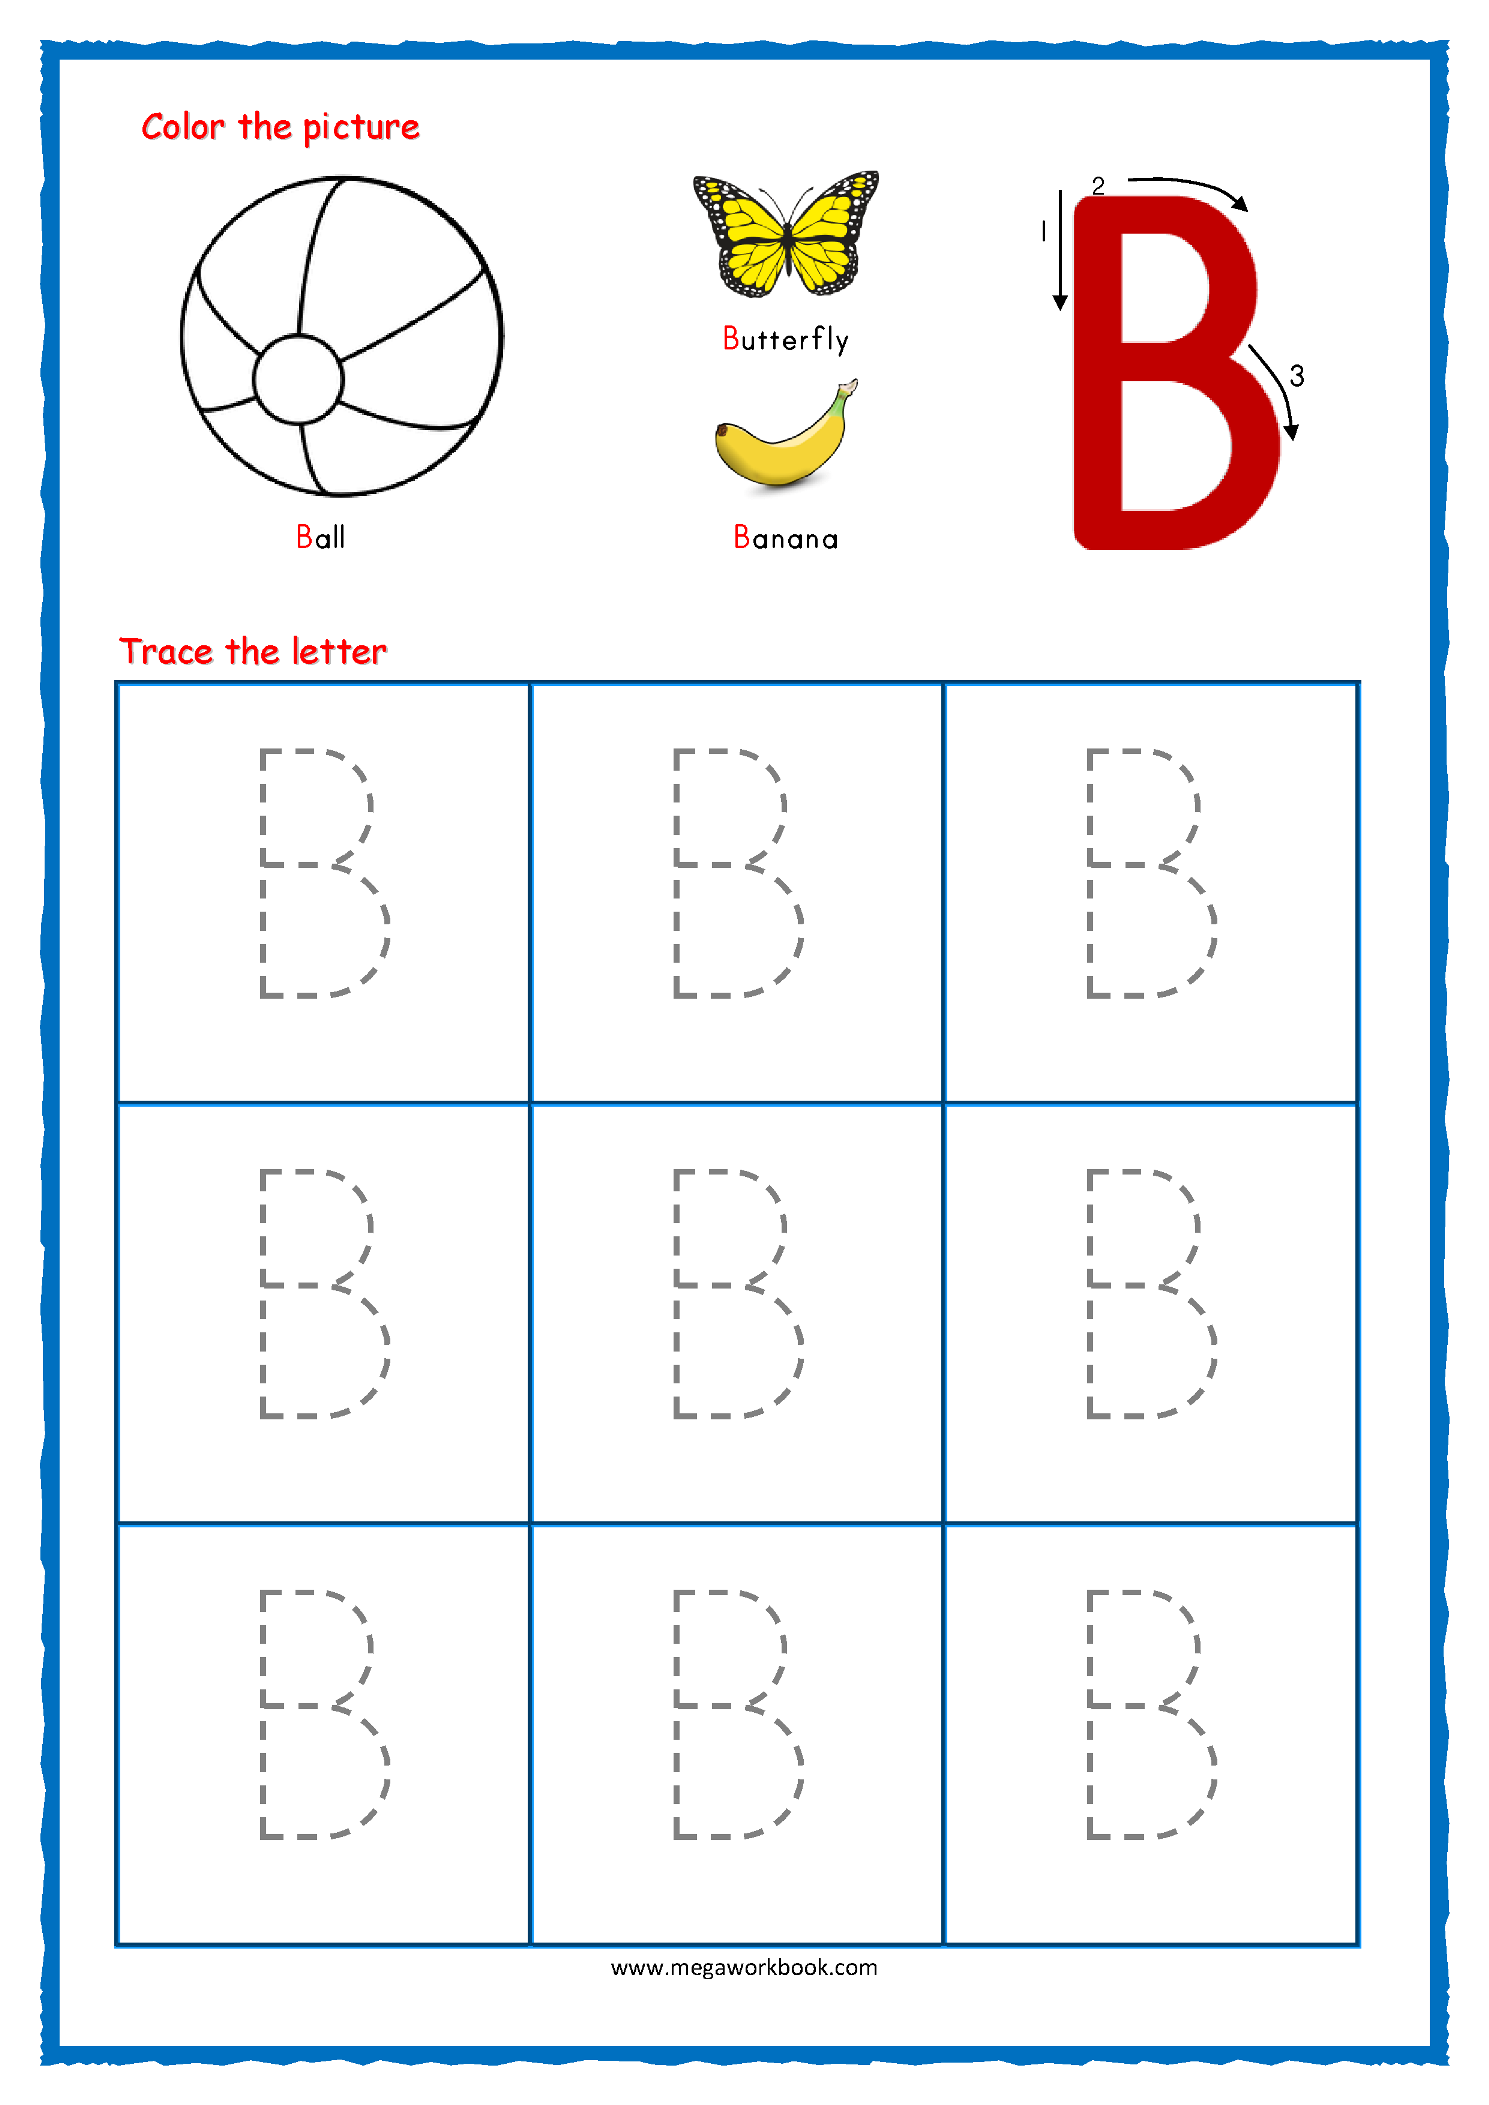 Capital_Letter_Tracing_With_Crayons_02_Alphabet_B Coloring pertaining to A Letter Tracing